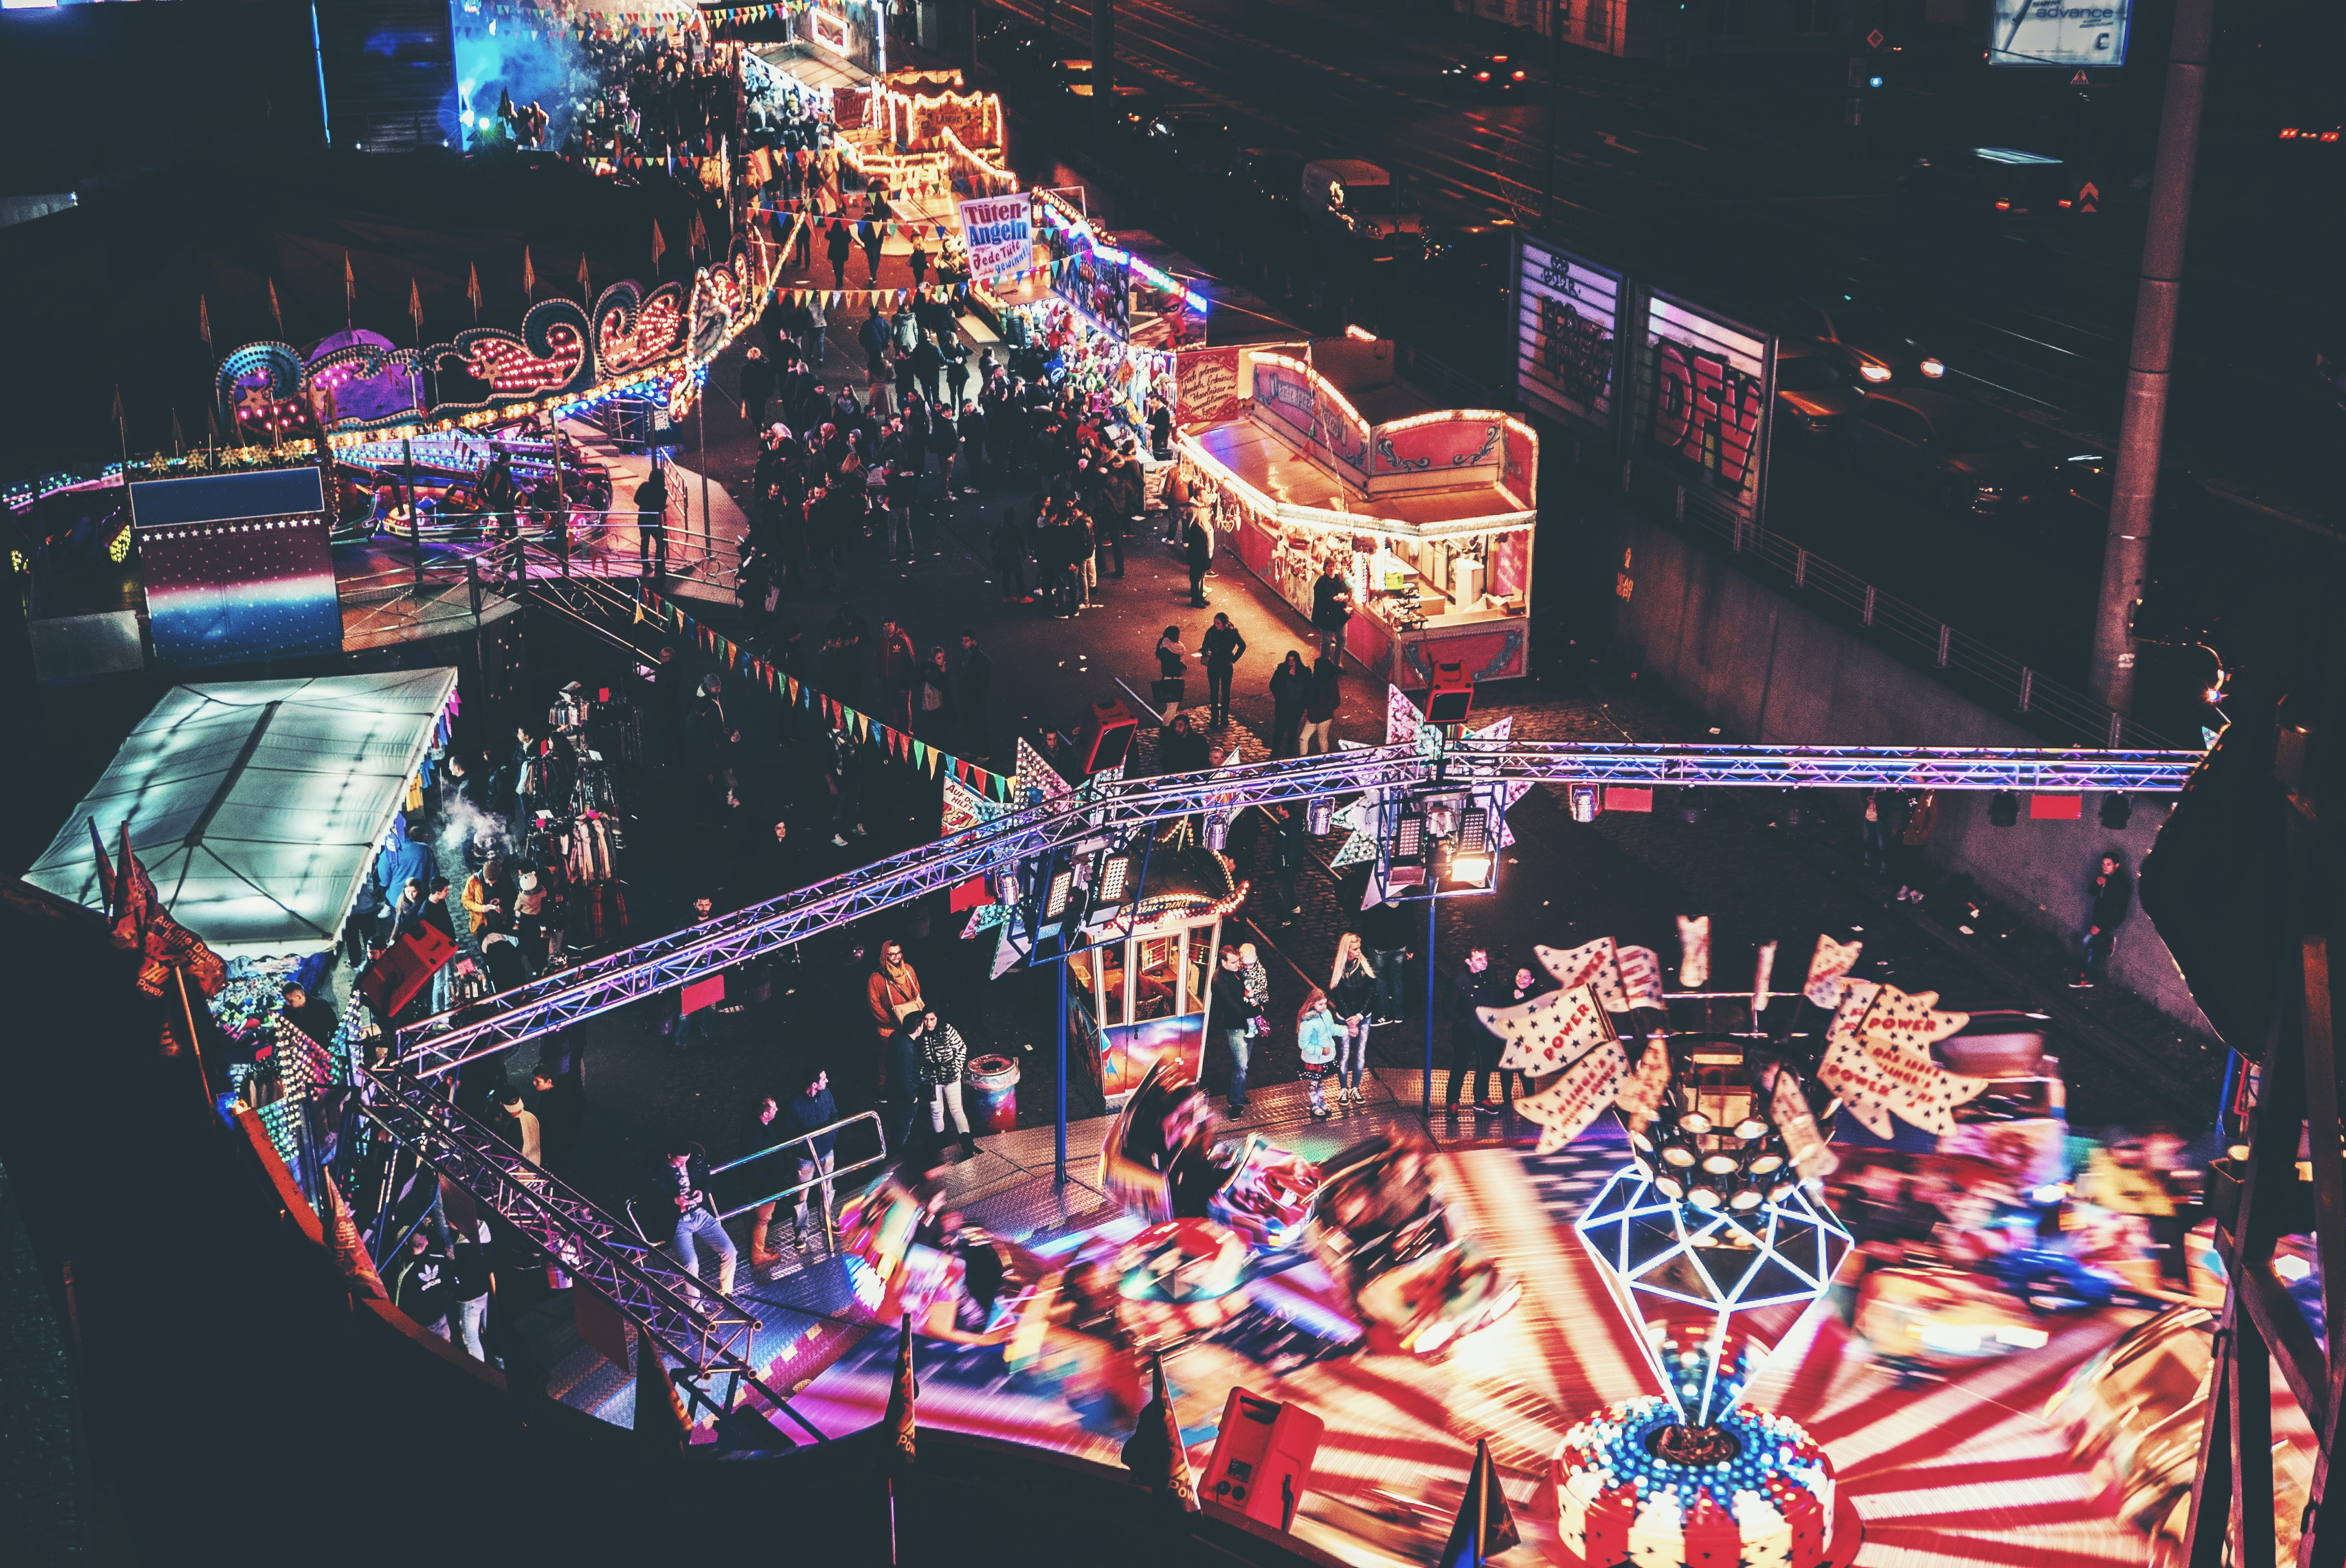 Crowd going around a Cologne amusement park with rides and stalls lighting up the night